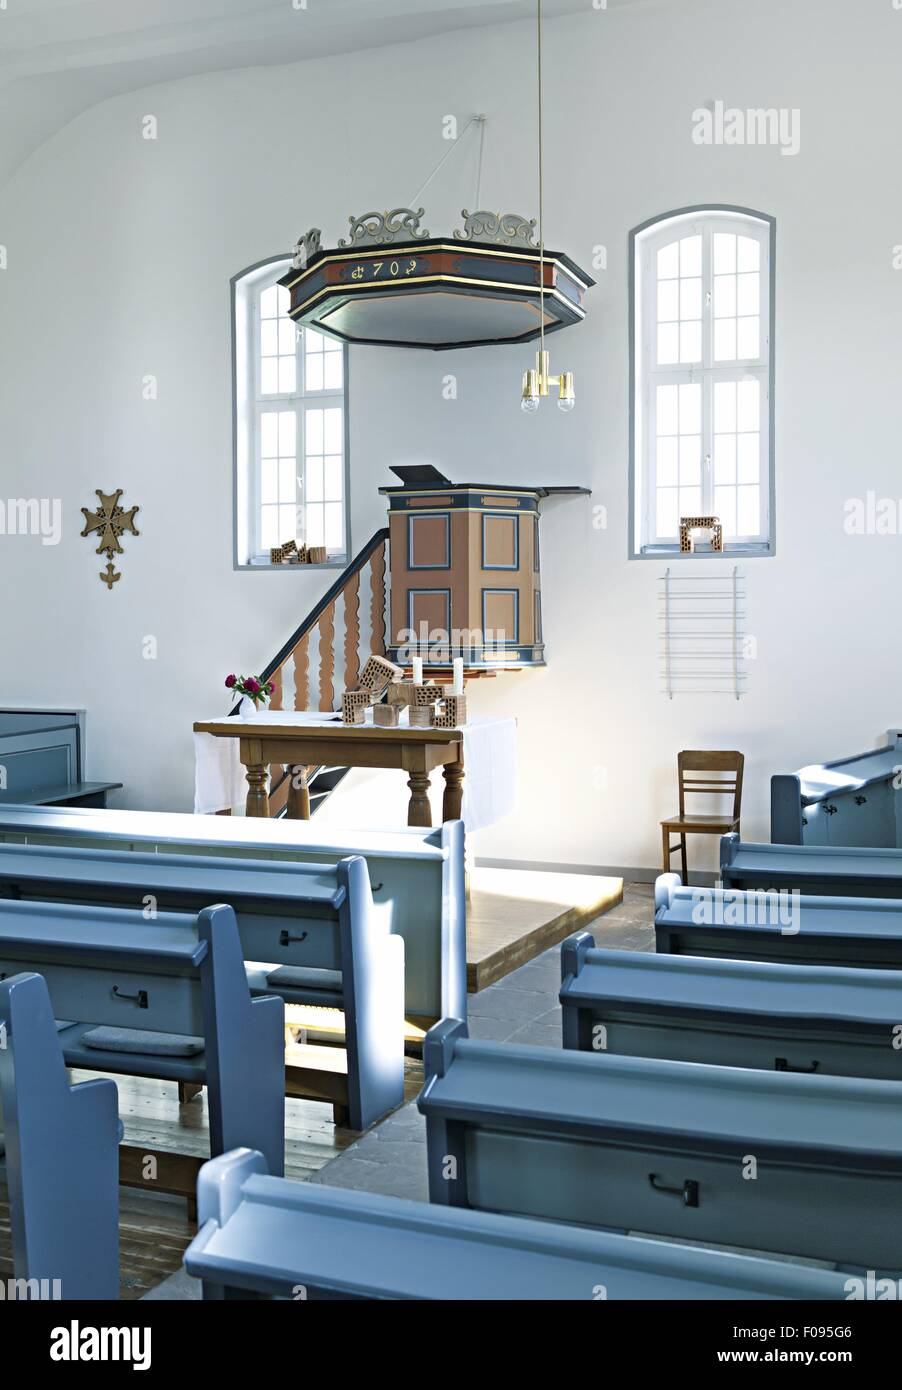 Interior of Huguenot Church in Kelze village, Hesse, Germany - Stock Image